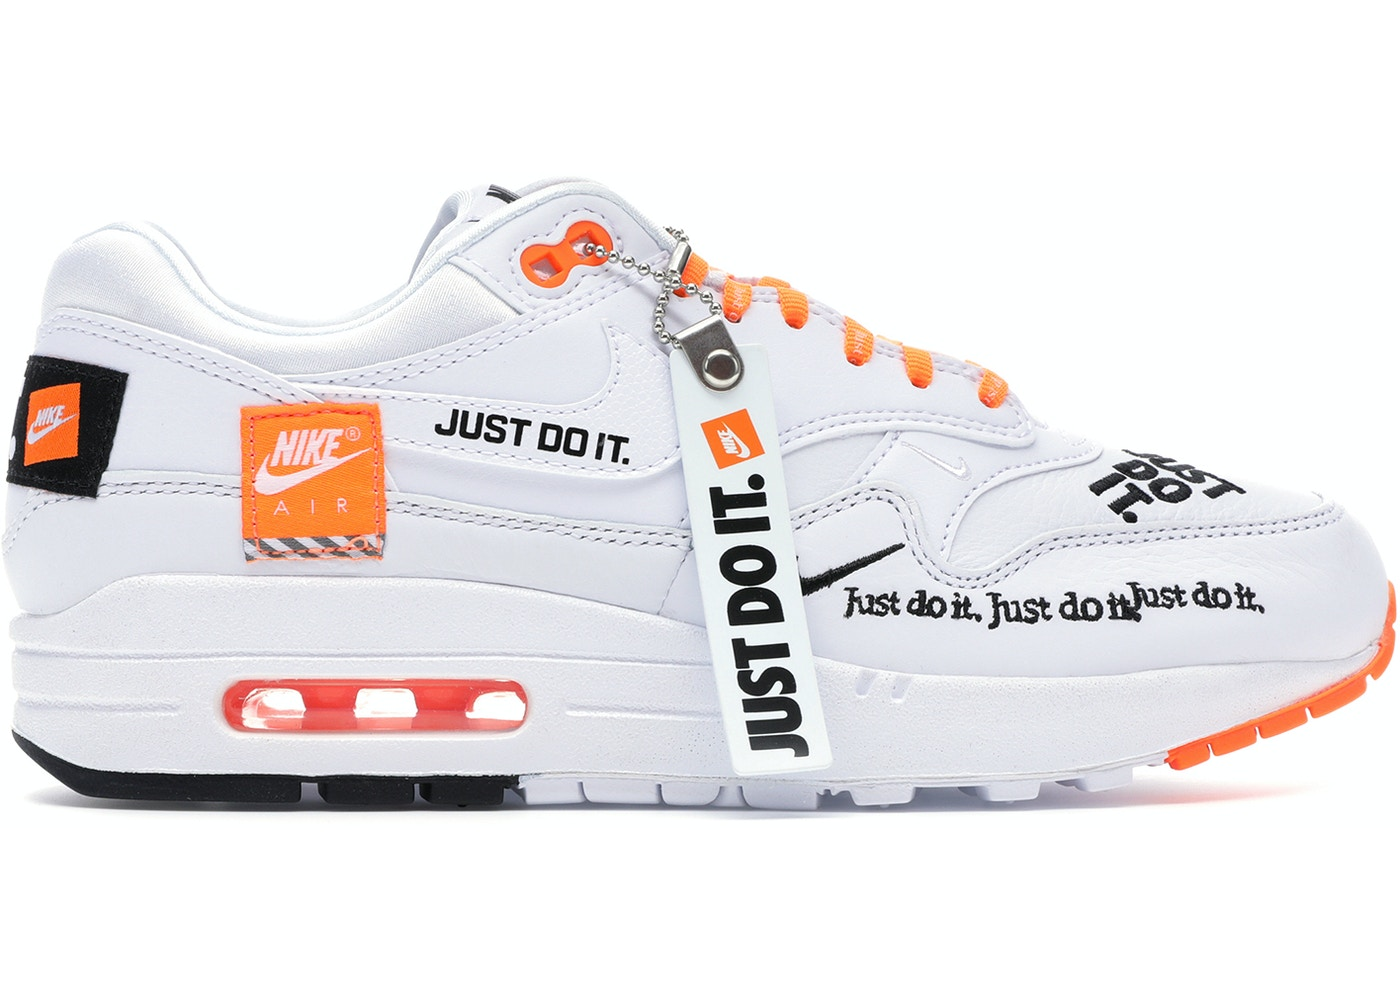 038ef49d8e7 Air Max 1 Just Do It White (W) - 917691-100